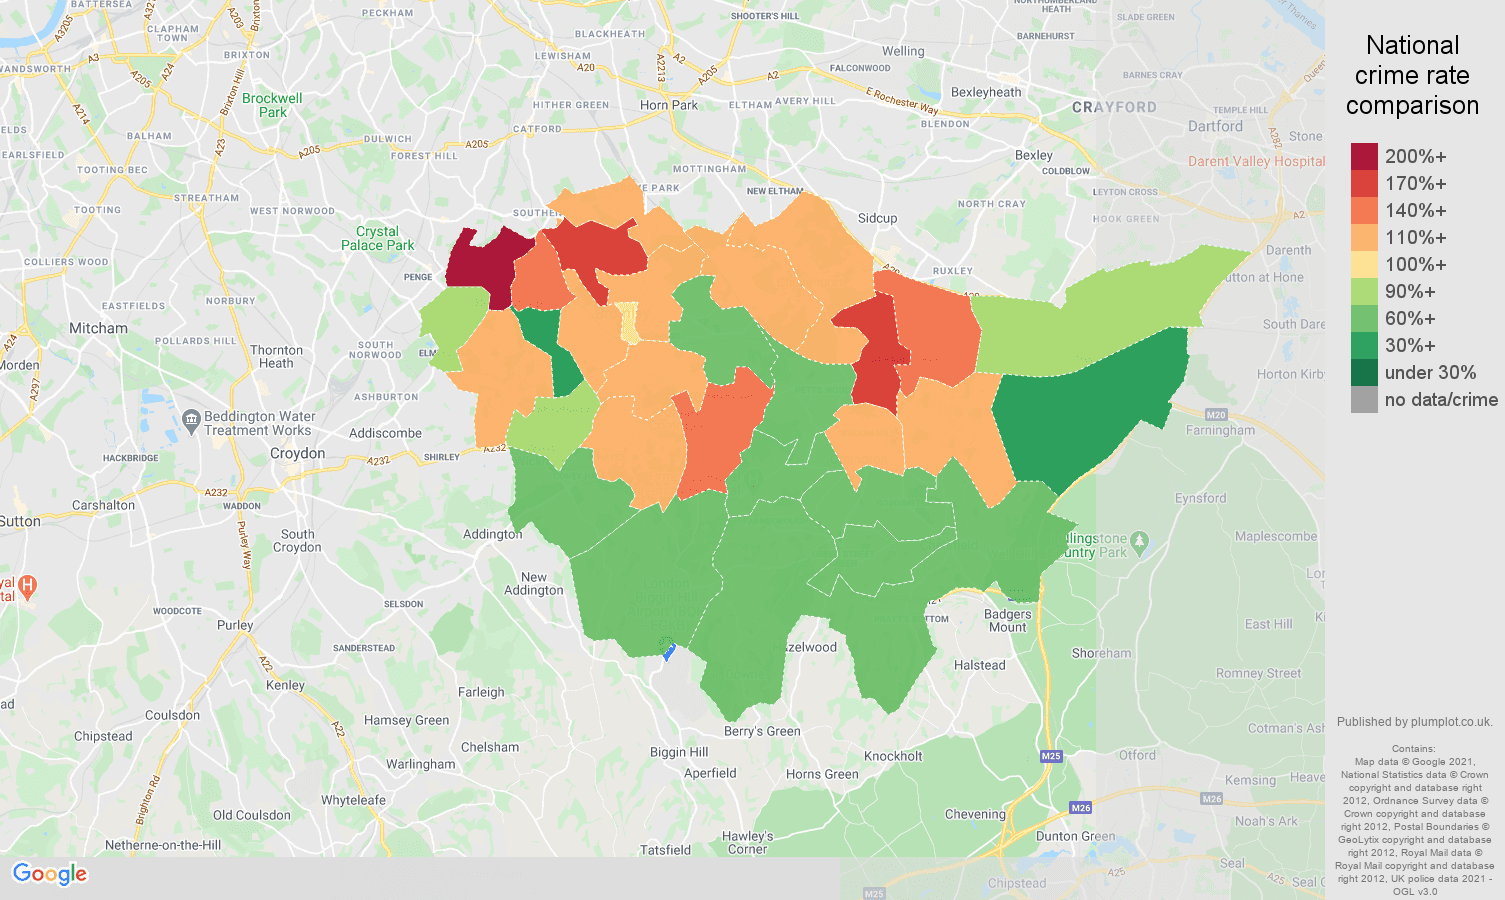 Bromley antisocial behaviour crime rate comparison map